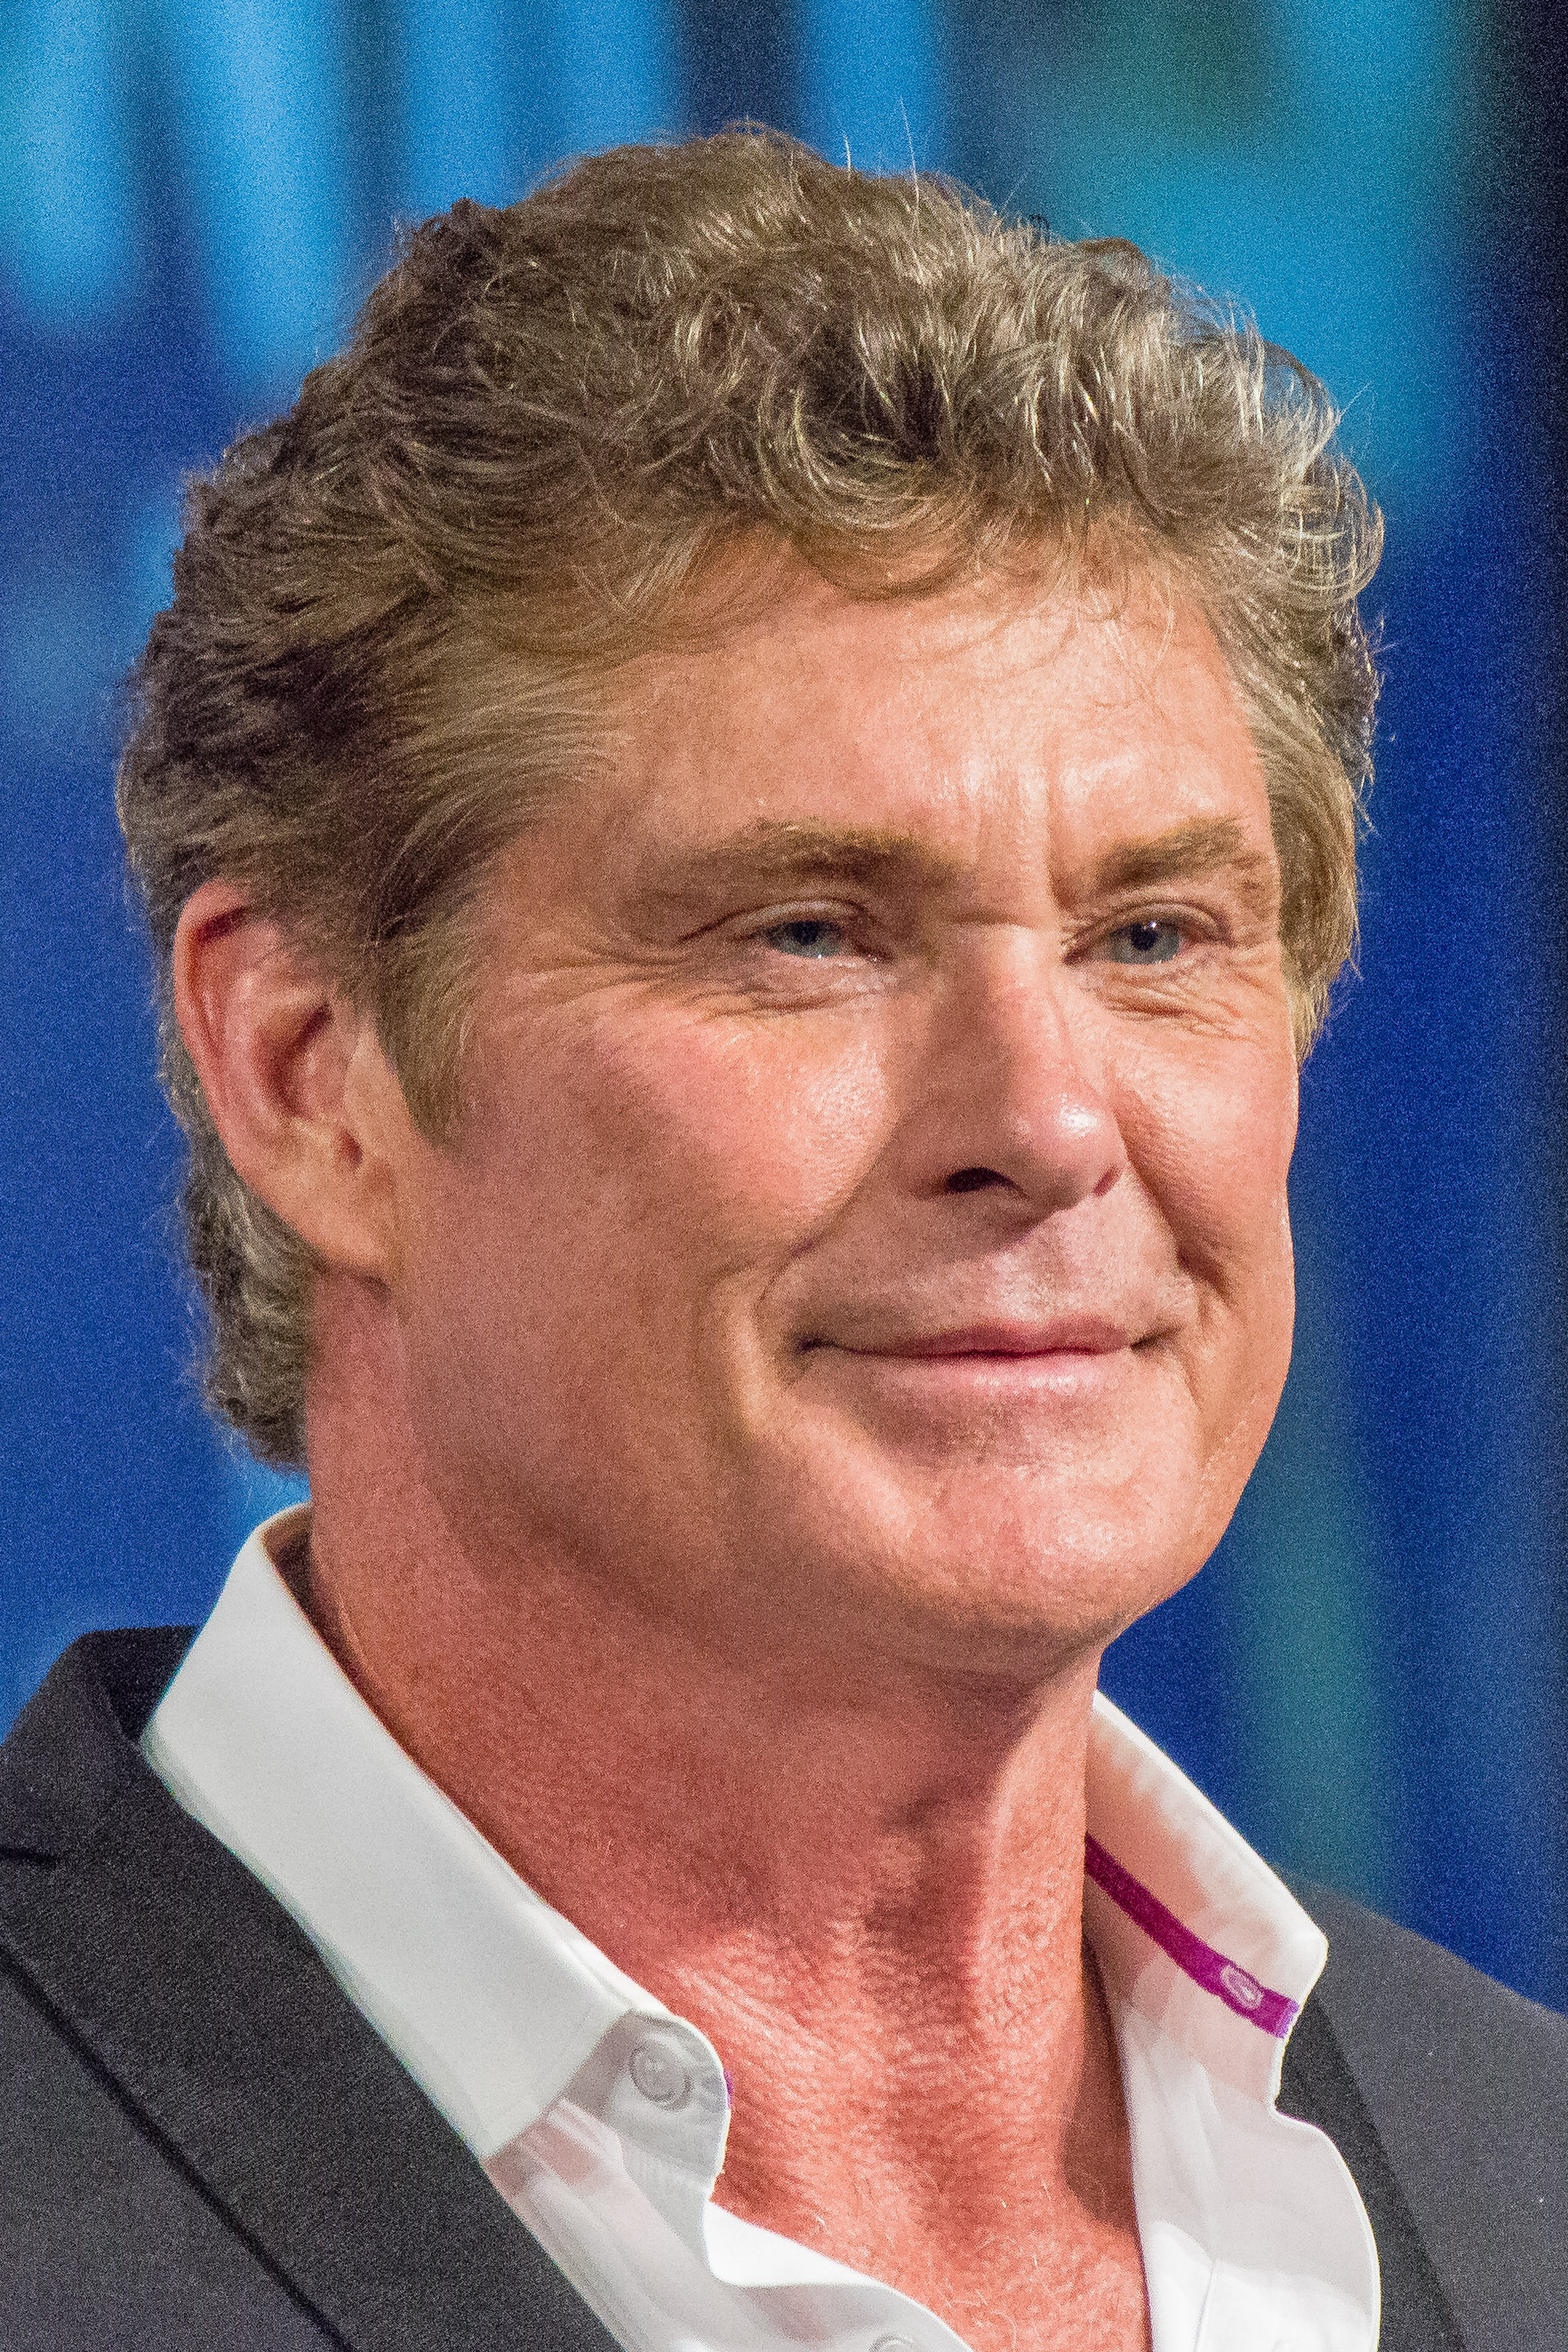 david hasselhoff jump in my cardavid hasselhoff - true survivor, david hasselhoff du, david hasselhoff lights in the darkness, david hasselhoff knight rider, david hasselhoff night rocker, david hasselhoff – true survivor lyrics, david hasselhoff hooked on a feeling, david hasselhoff du перевод, david hasselhoff 2016, david hasselhoff south park, david hasselhoff freedom, david hasselhoff red alert 3, david hasselhoff russia, david hasselhoff - looking for freedom, david hasselhoff survivor, david hasselhoff - limbo dance, david hasselhoff car, david hasselhoff jump in my car, david hasselhoff du lyrics, david hasselhoff - true survivor